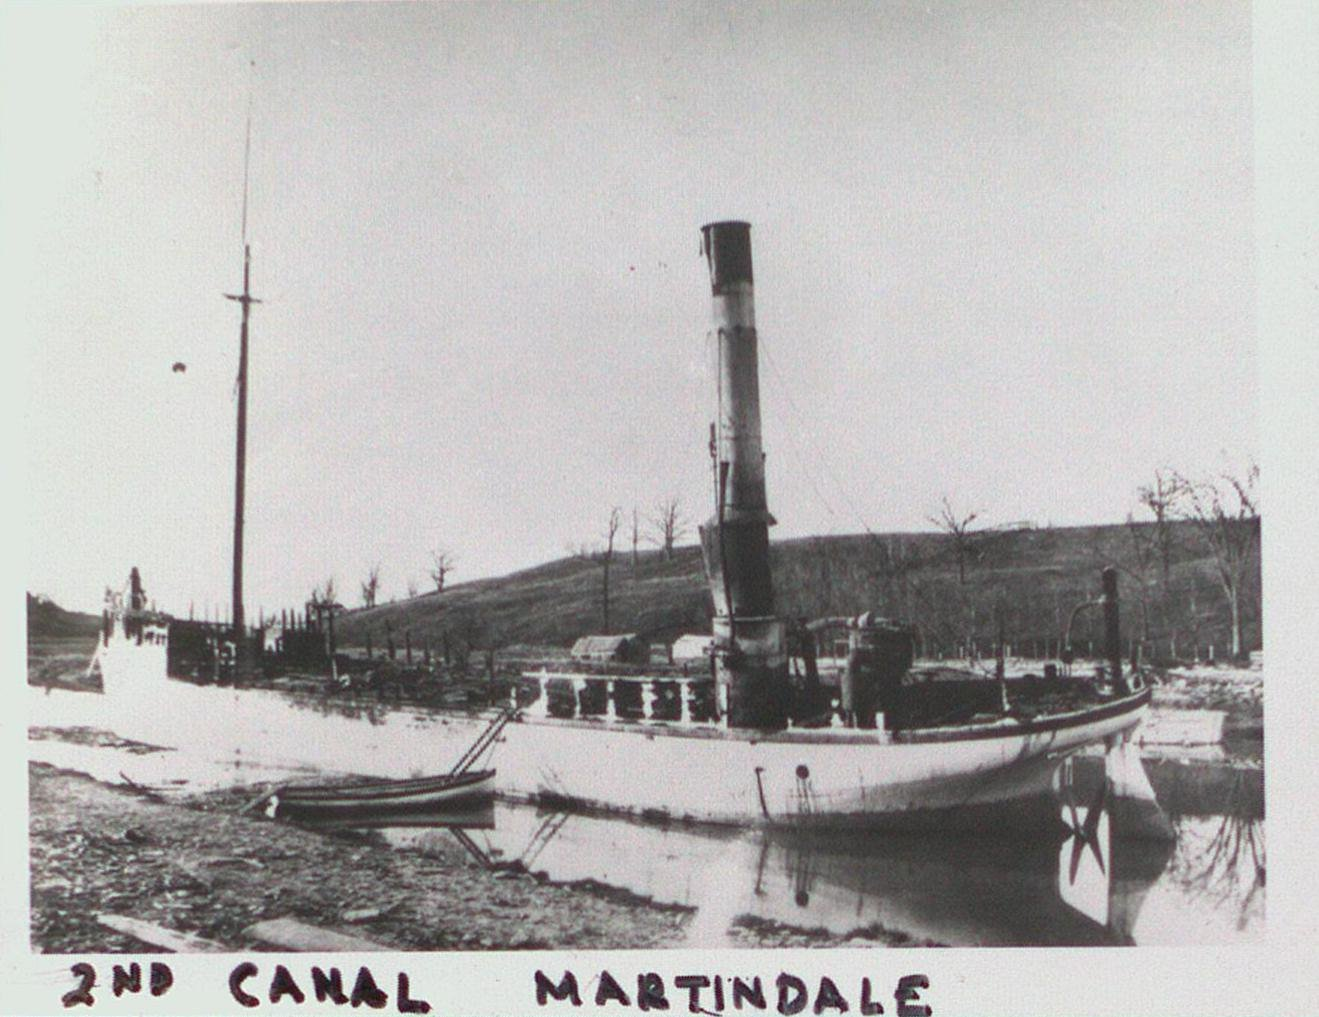 Early Steam Vessel in the Welland Canal at Martindale